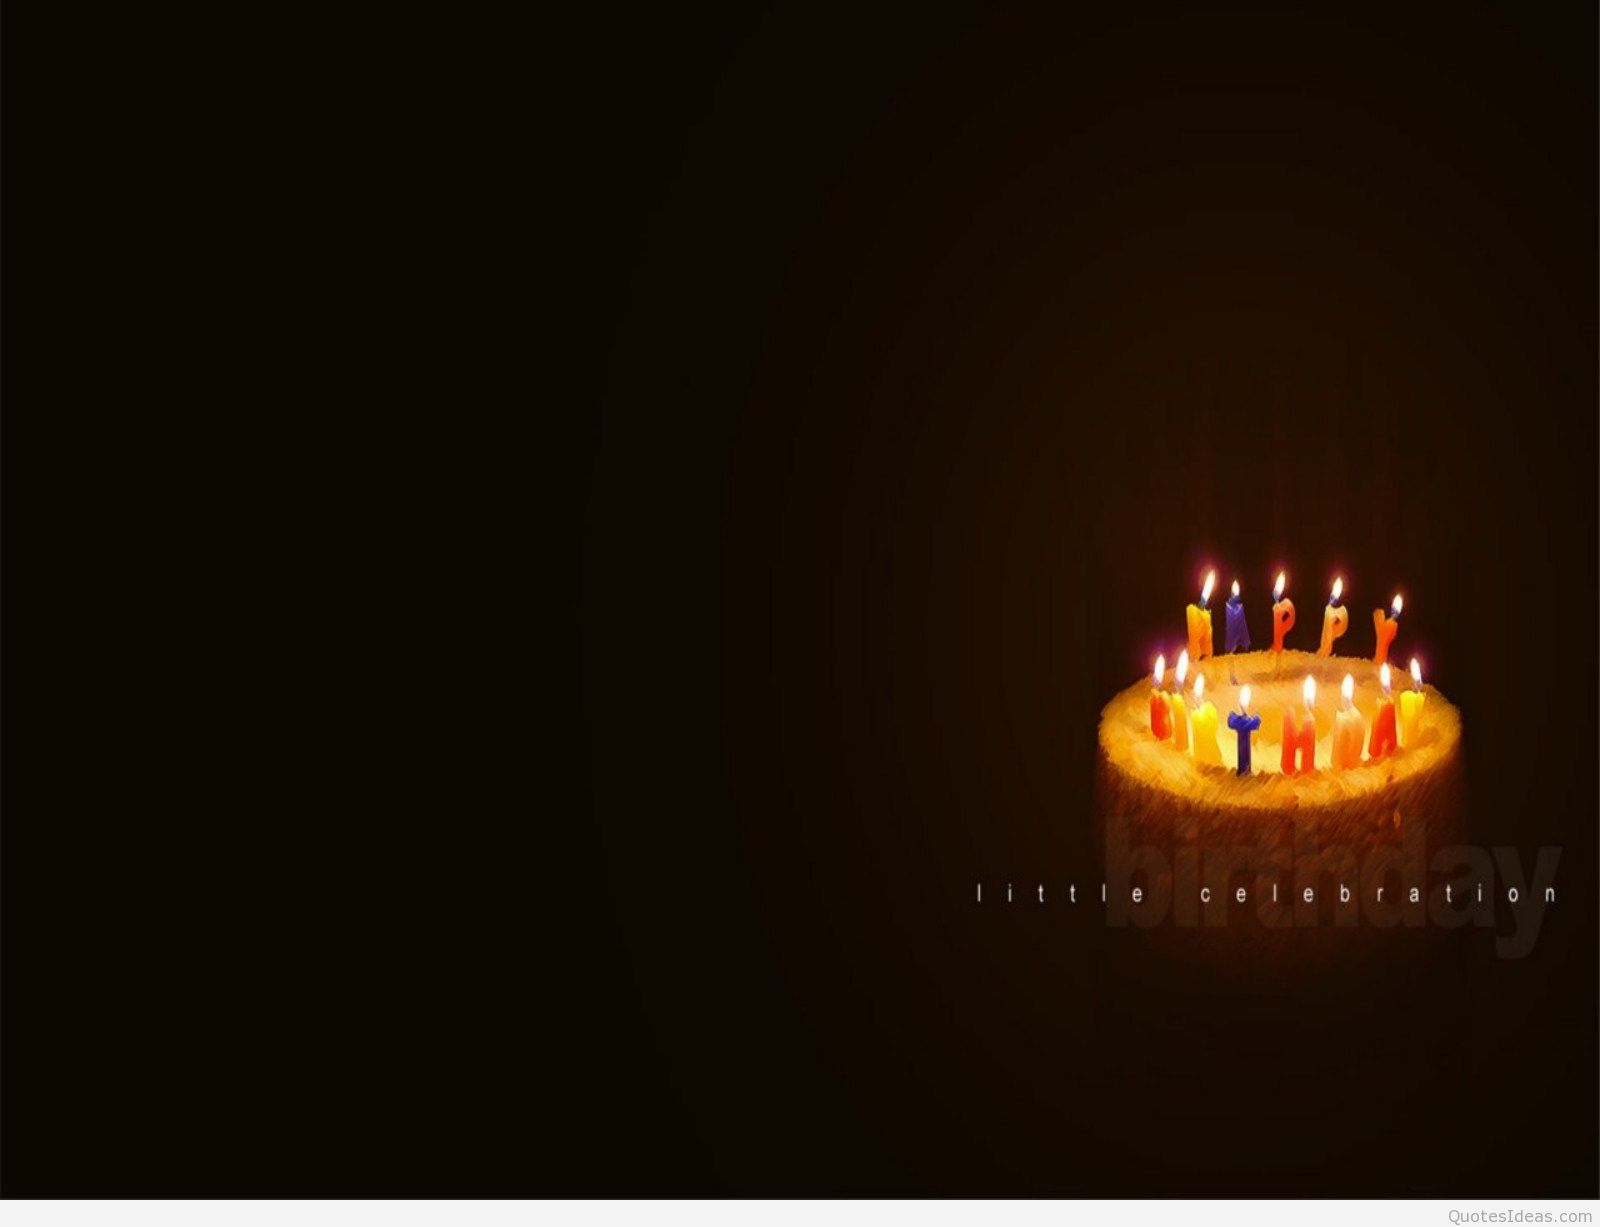 happy birthday wallpaper images ; 37143622-happy-birthday-wallpaper